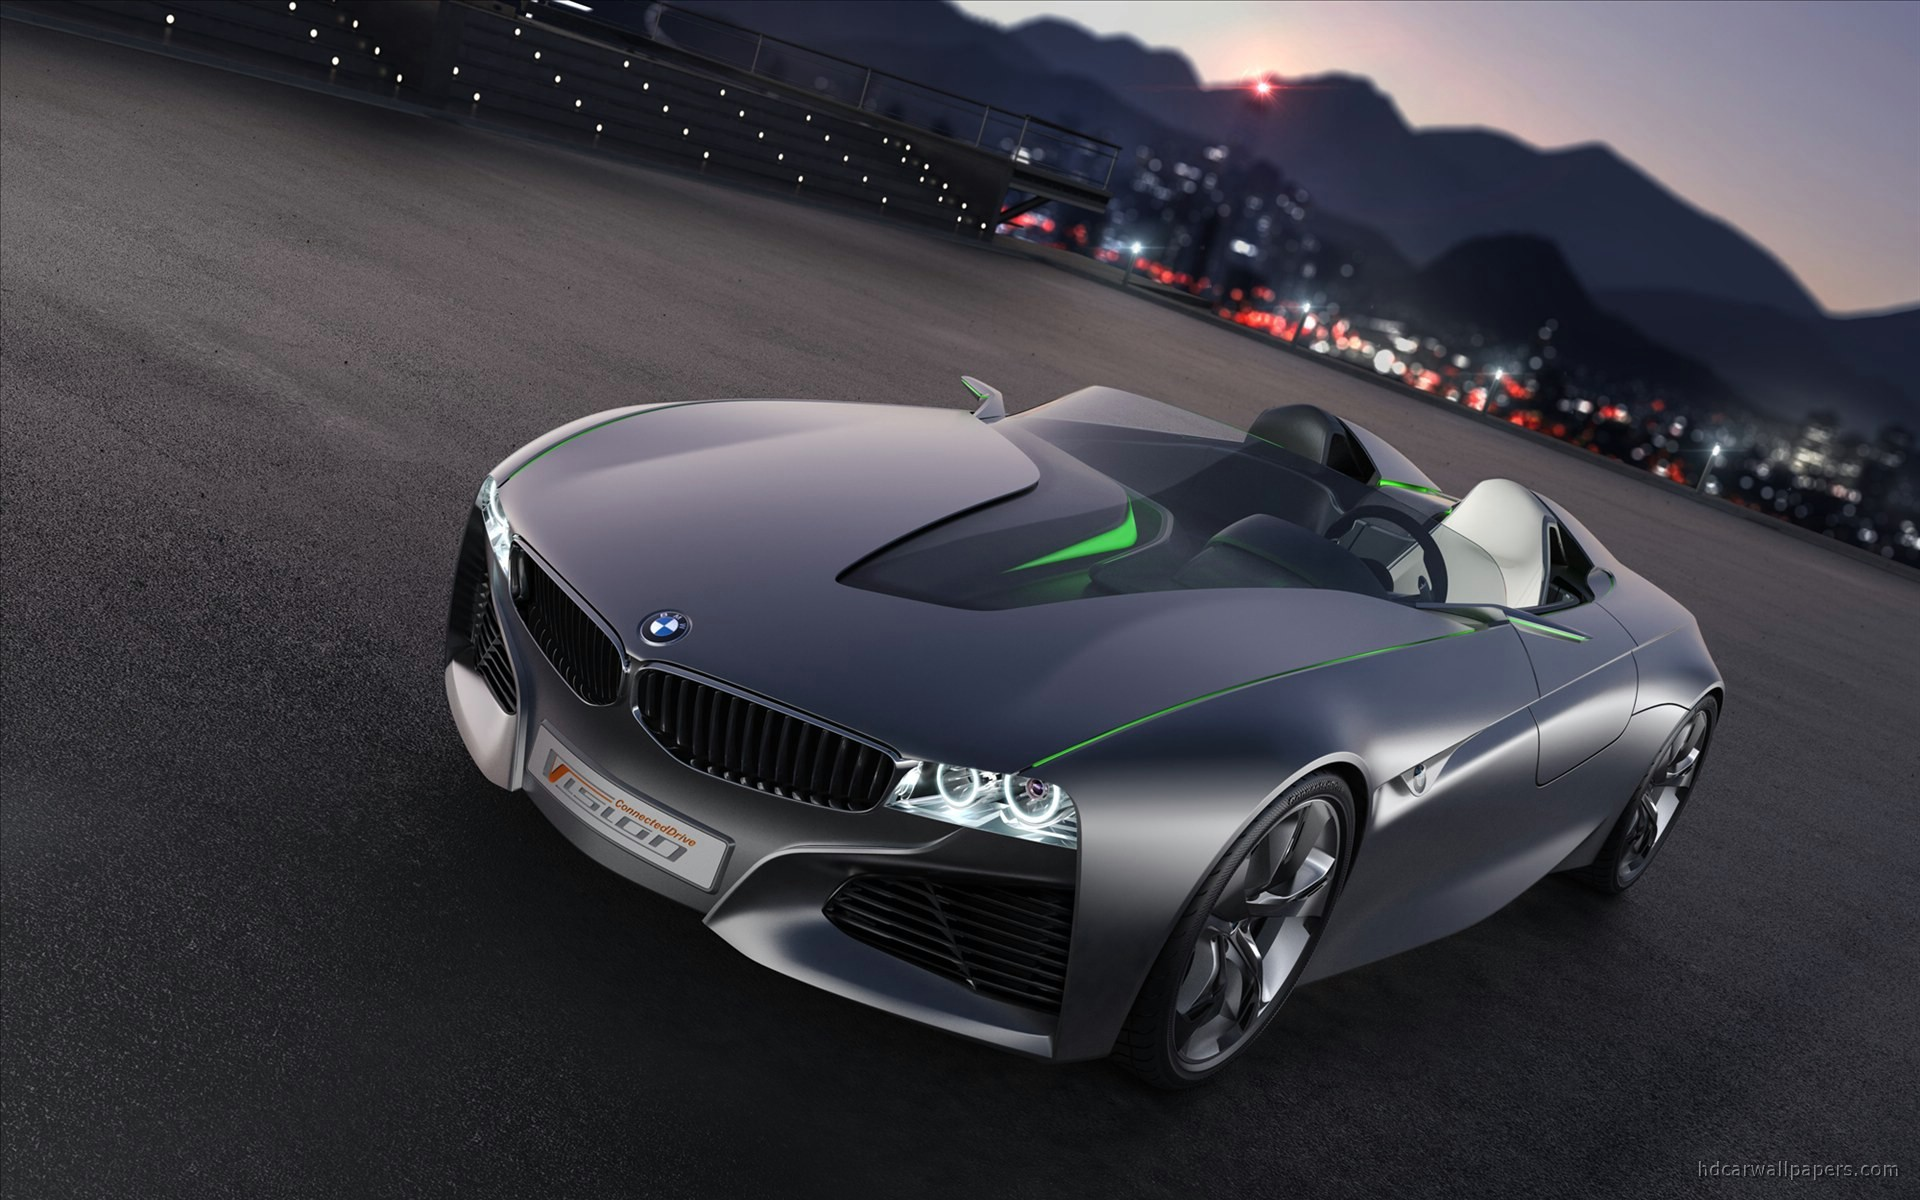 2011 Bmw Vision Connected Drive Concept Wallpaper Hd Car